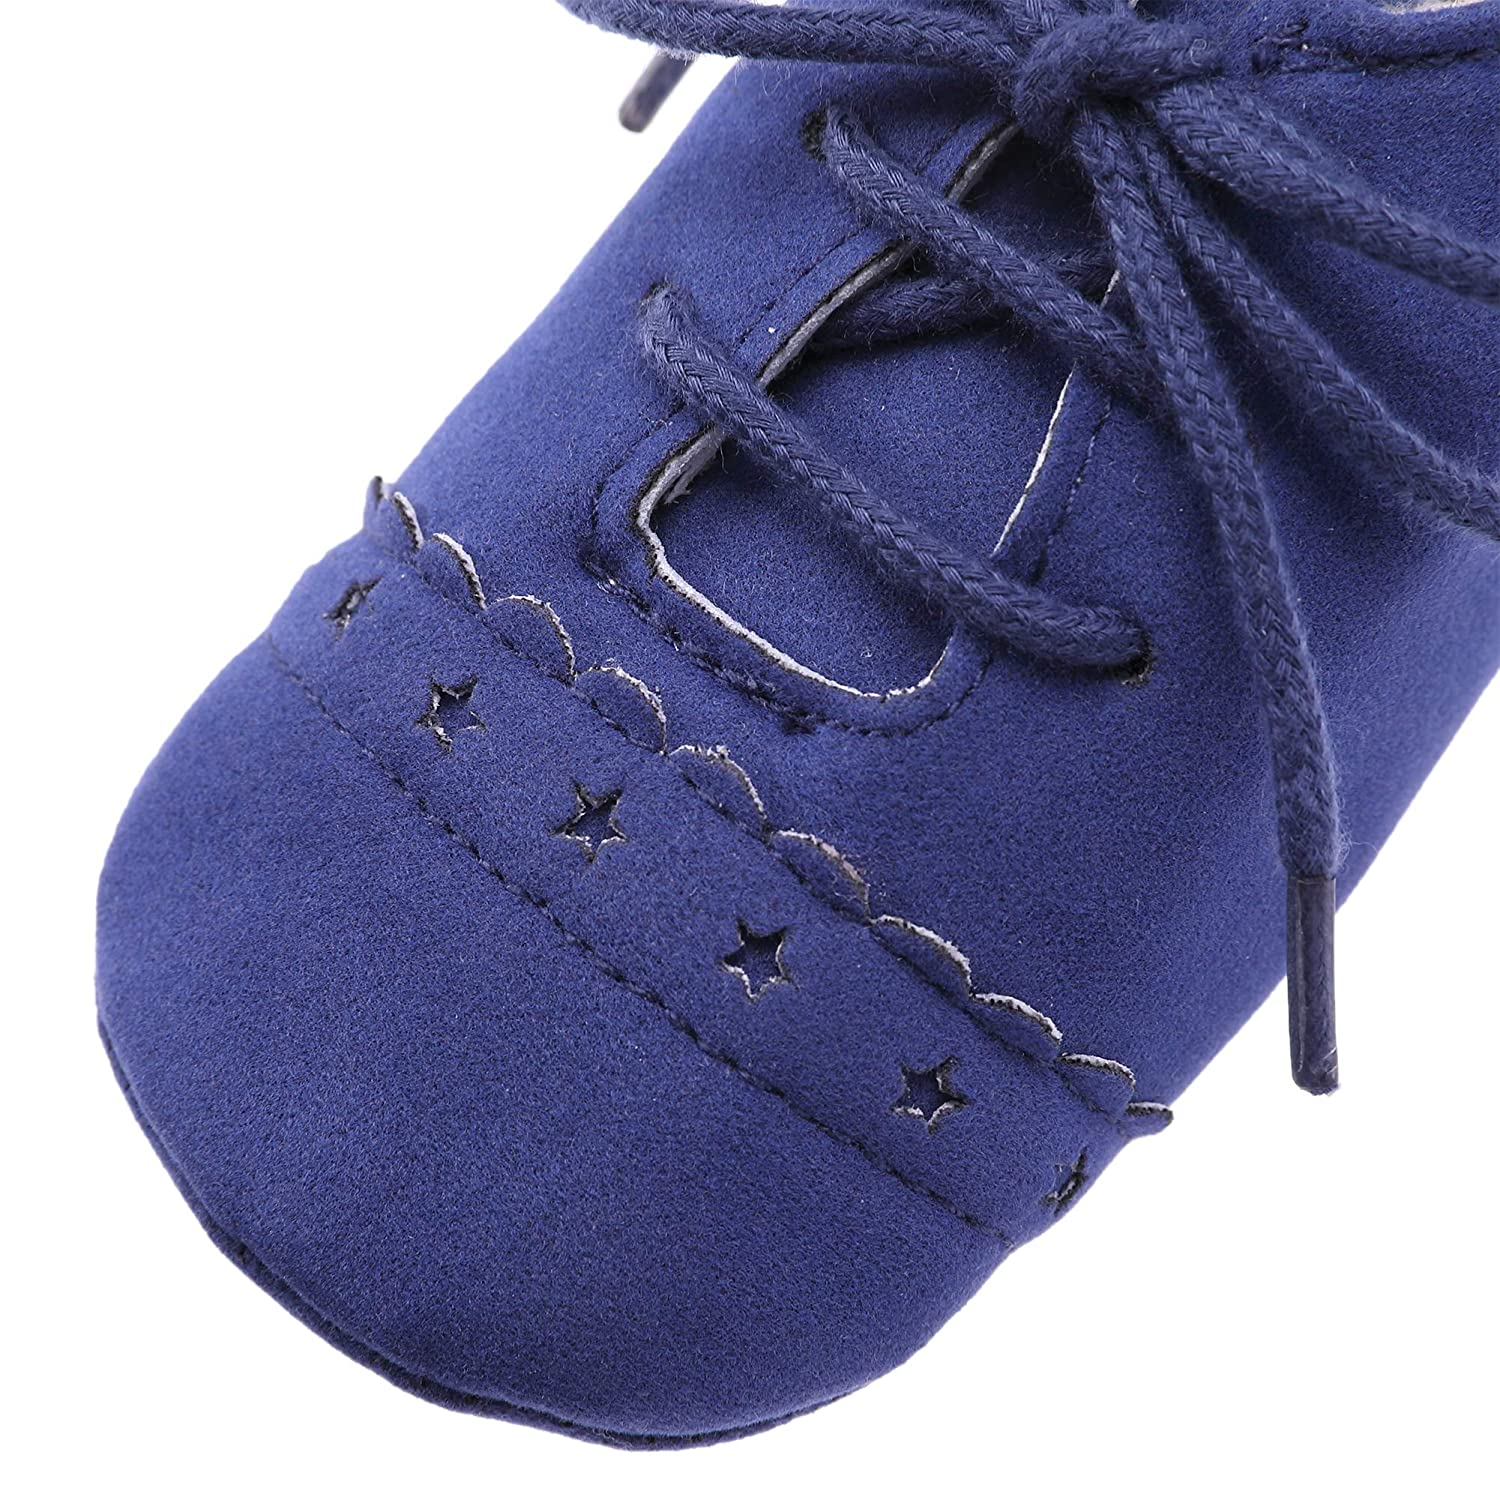 SCOWAY Baby Girls Boys Suede Shoes Lace-up Soft Sole Moccasins Slippers Infant Todddler First Walkers Crib Shoes